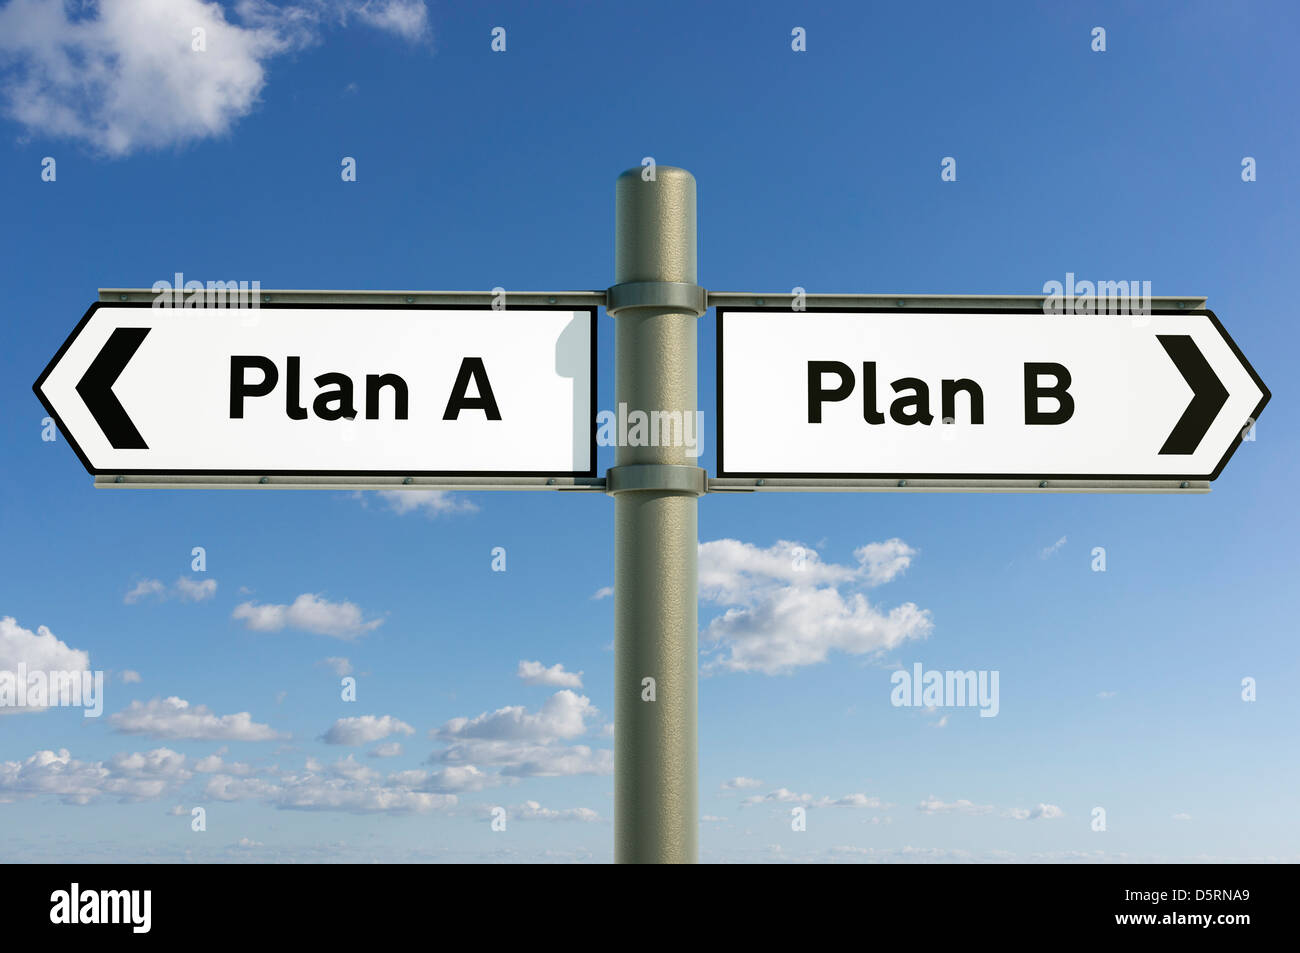 Change concept - Plan A or Plan B decision making choice concept sign - Stock Image